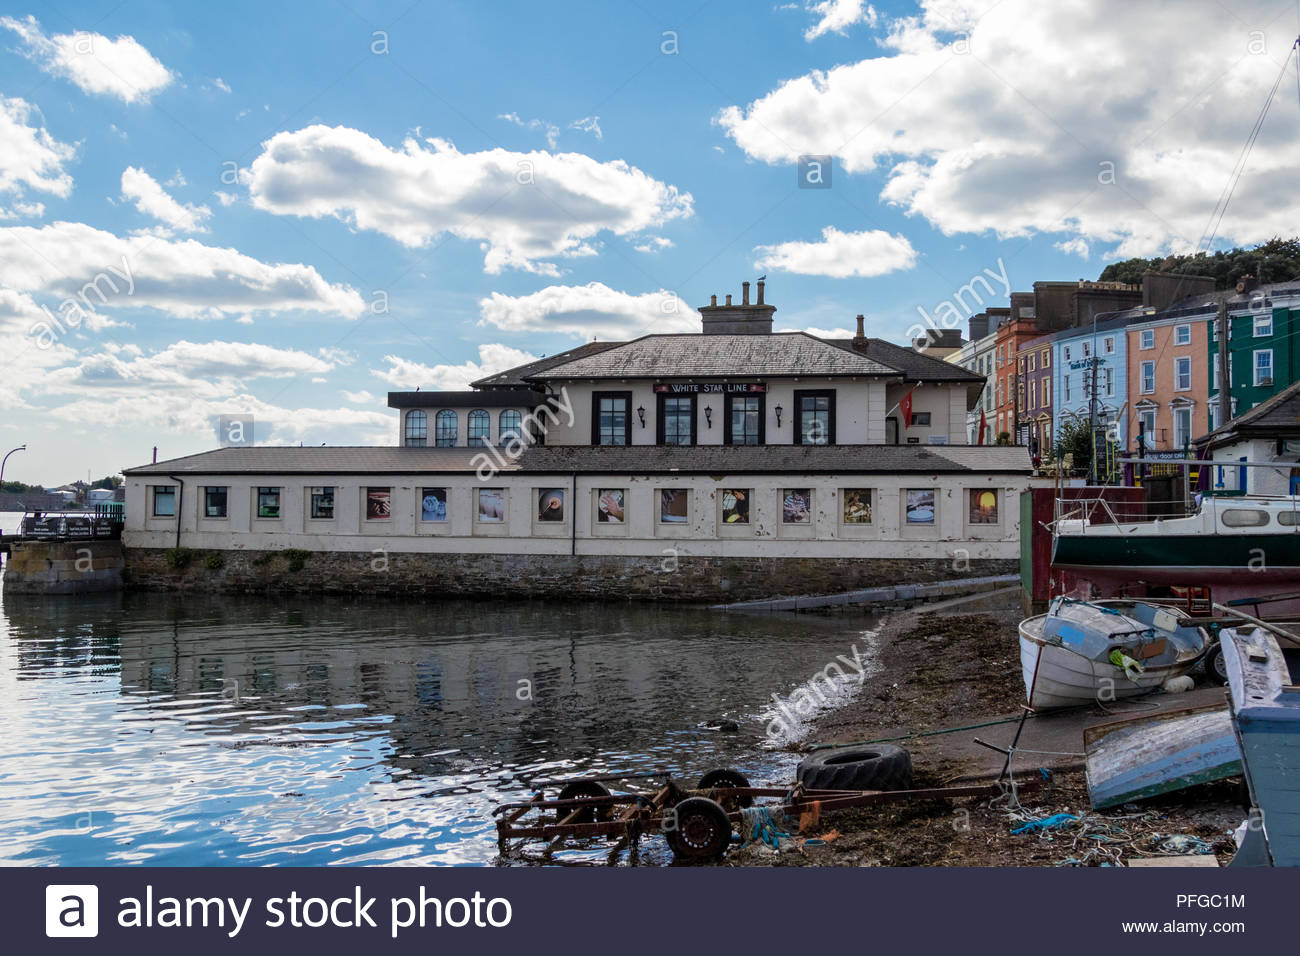 The former White Star Line offices in Cobh, Republic of Ireland, now home to the Titanic Experience exhibition. - Stock Image